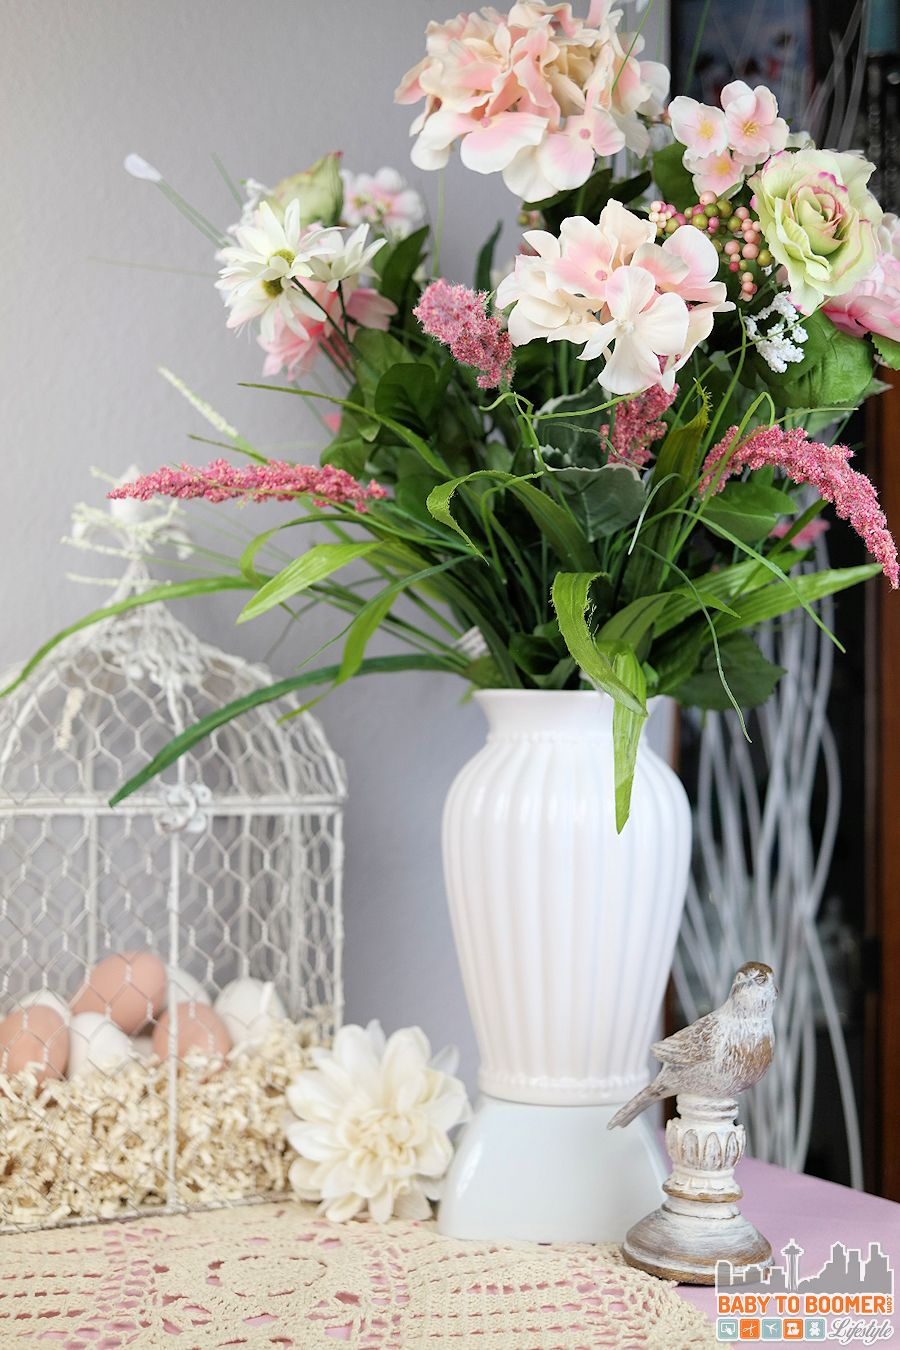 Having a heat-n-eat dinner means I have more time for putting together a little Easter decor and time to enjoy family, and that means I'm less frustrated and frazzled, and that's better for everyone.